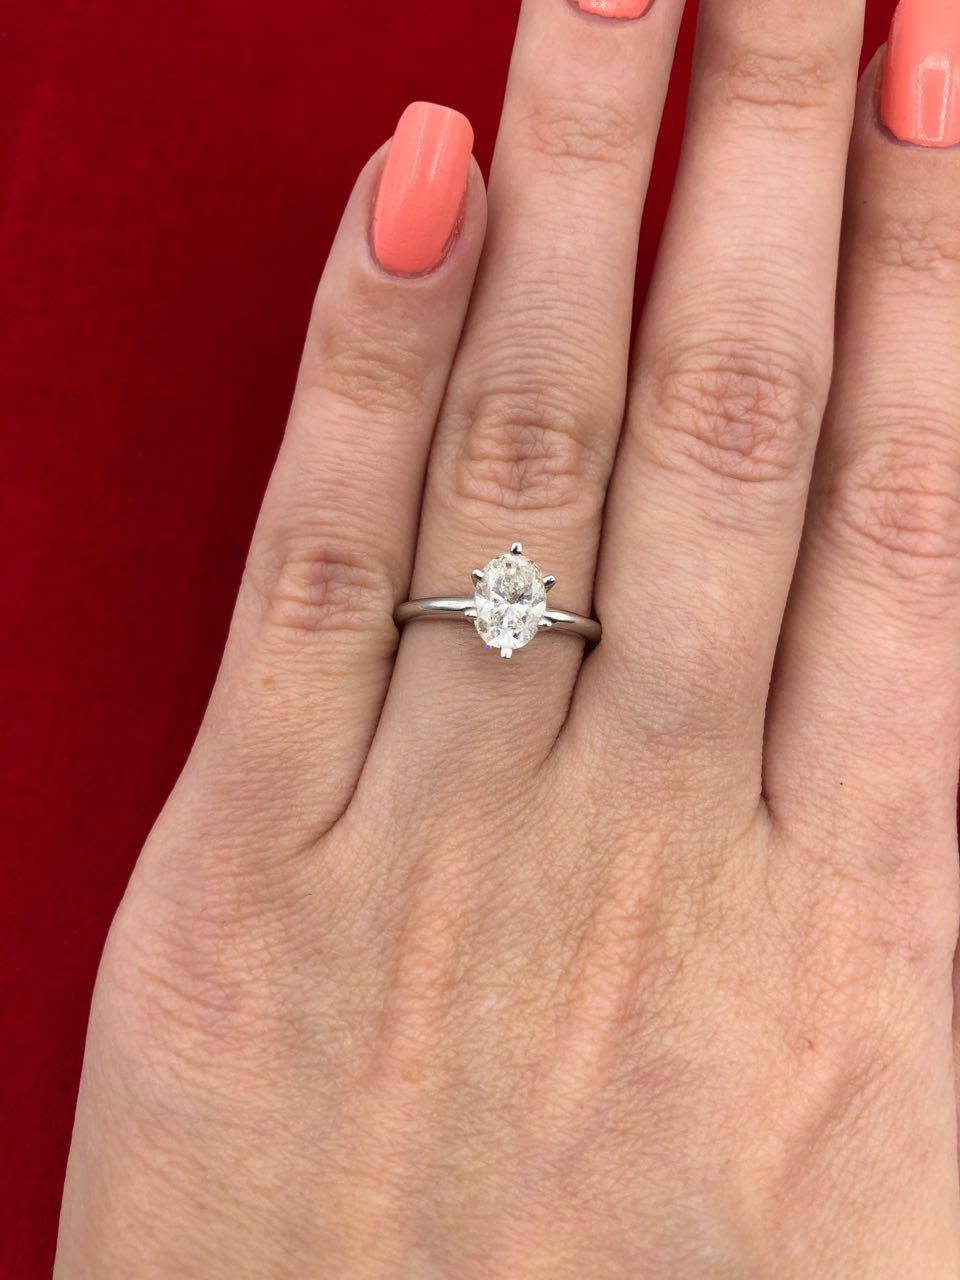 Engagement ring features 1.00ct center Oval Diamond